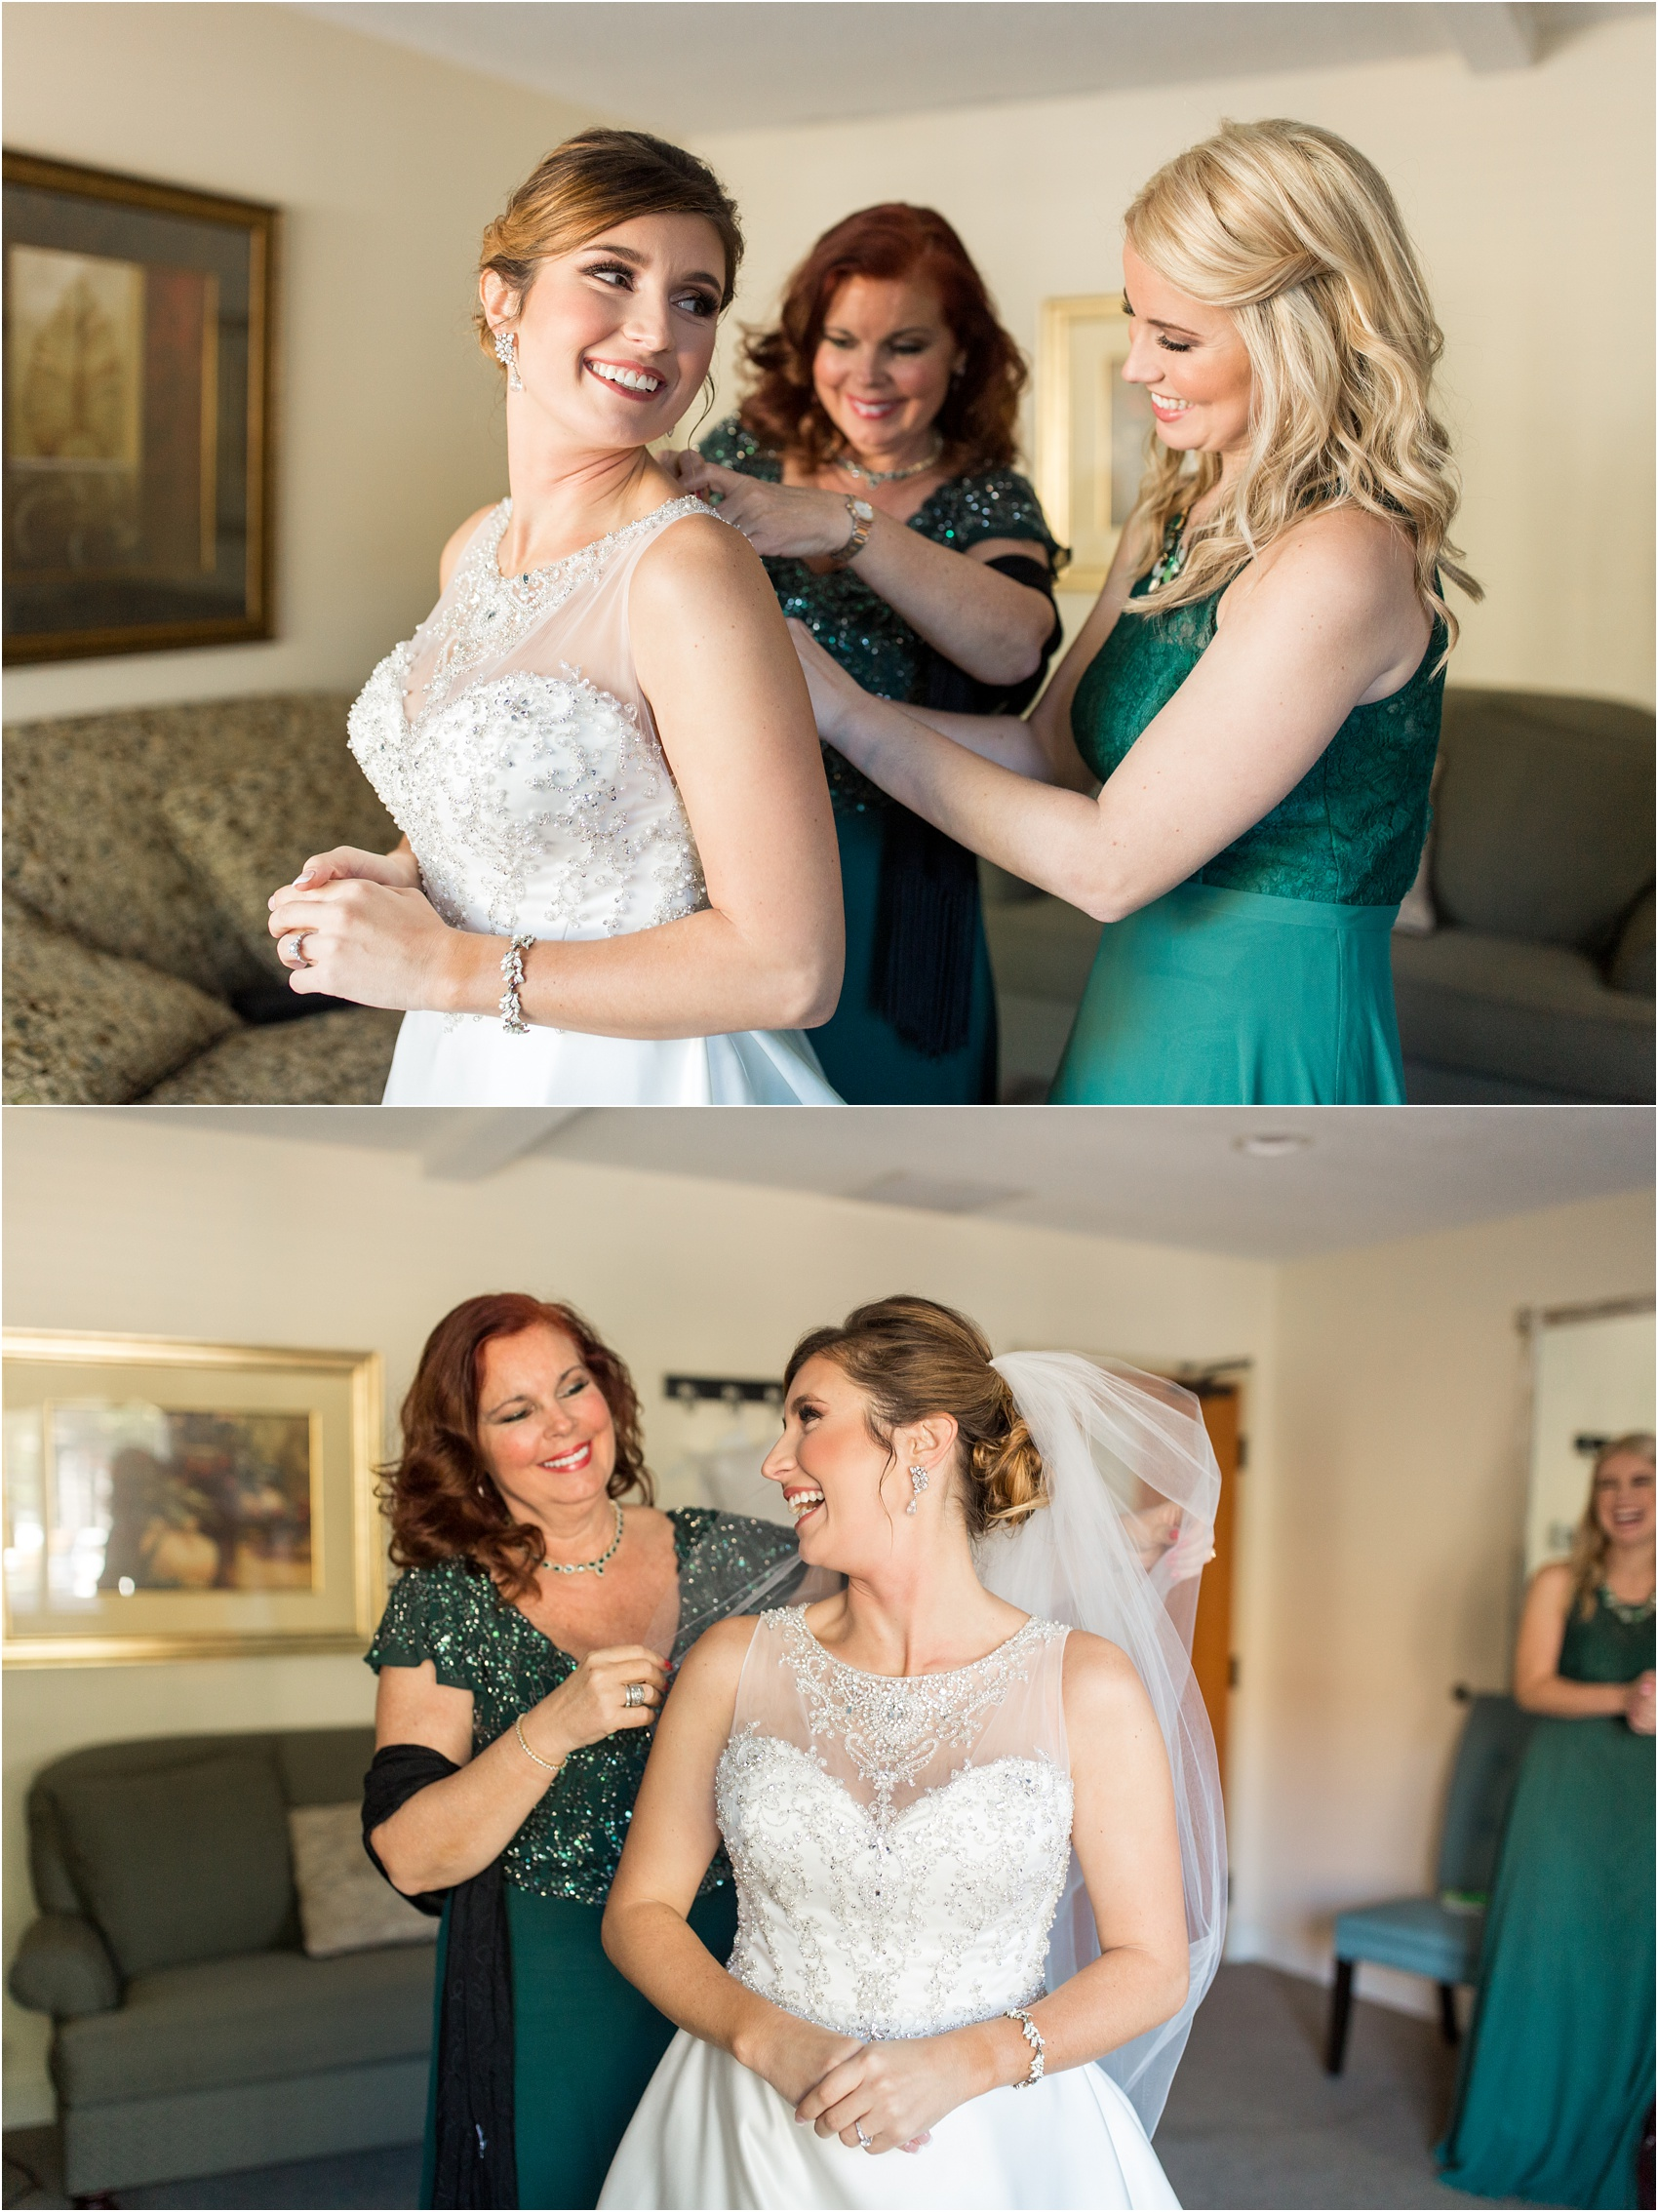 Savannah Eve Photography- Bottiglion-Scope Wedding- Sneak Peek-10.jpg